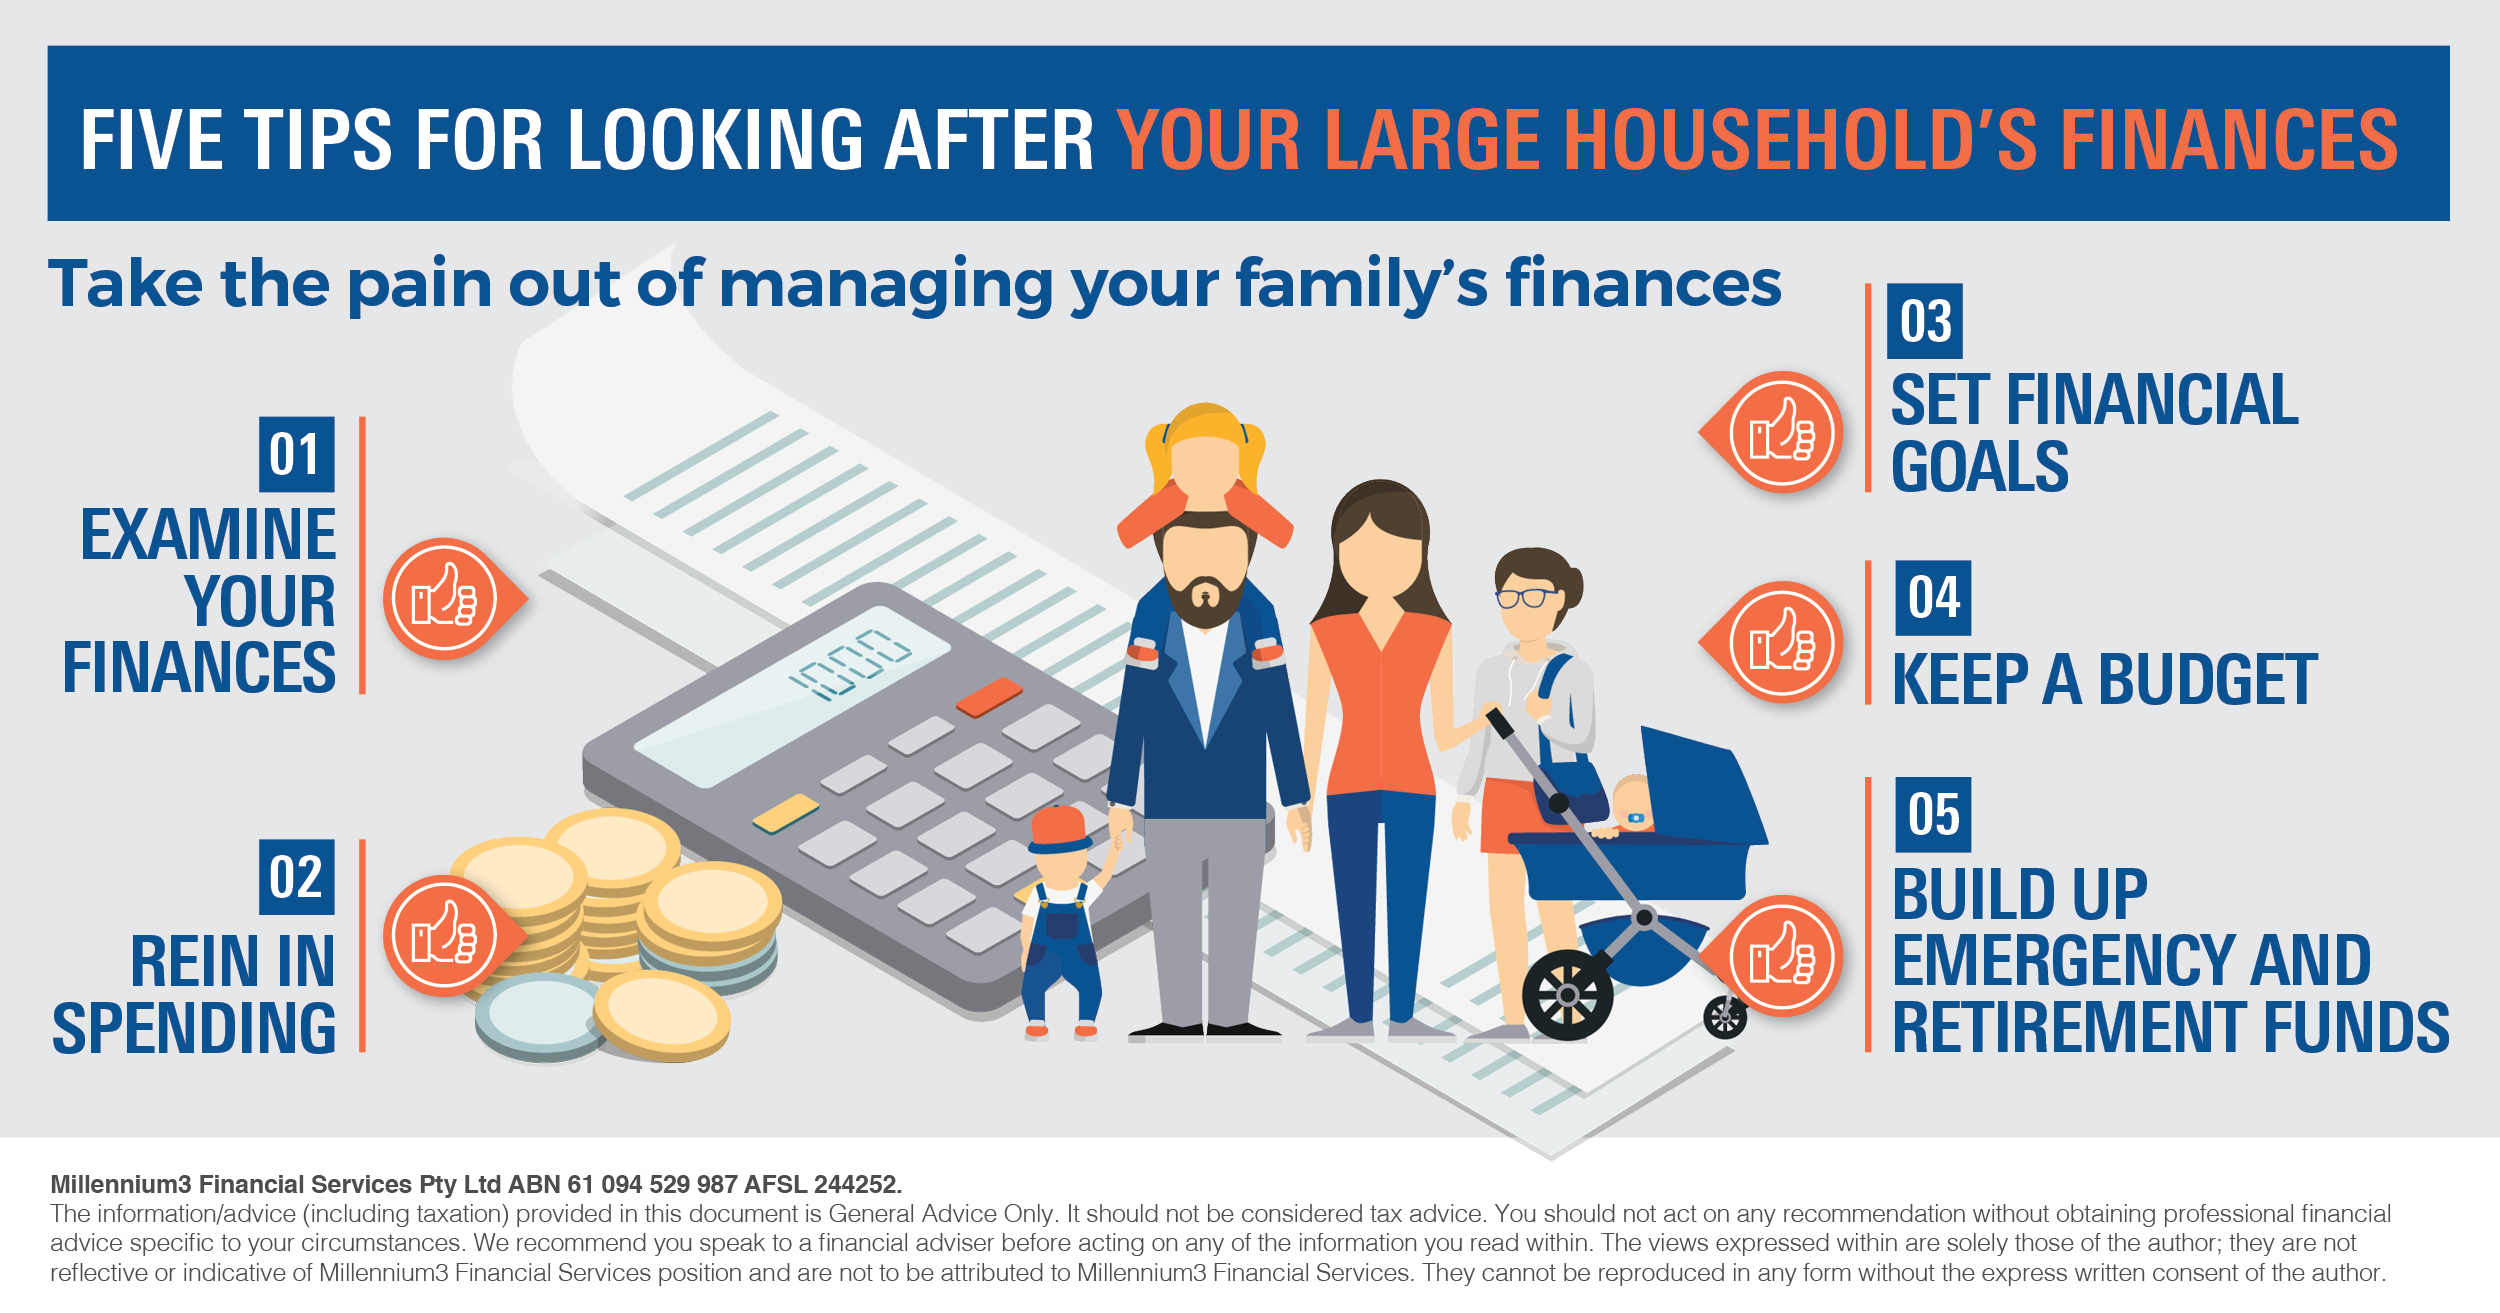 Infographic_Five tips for looking after your large household's finances_M3